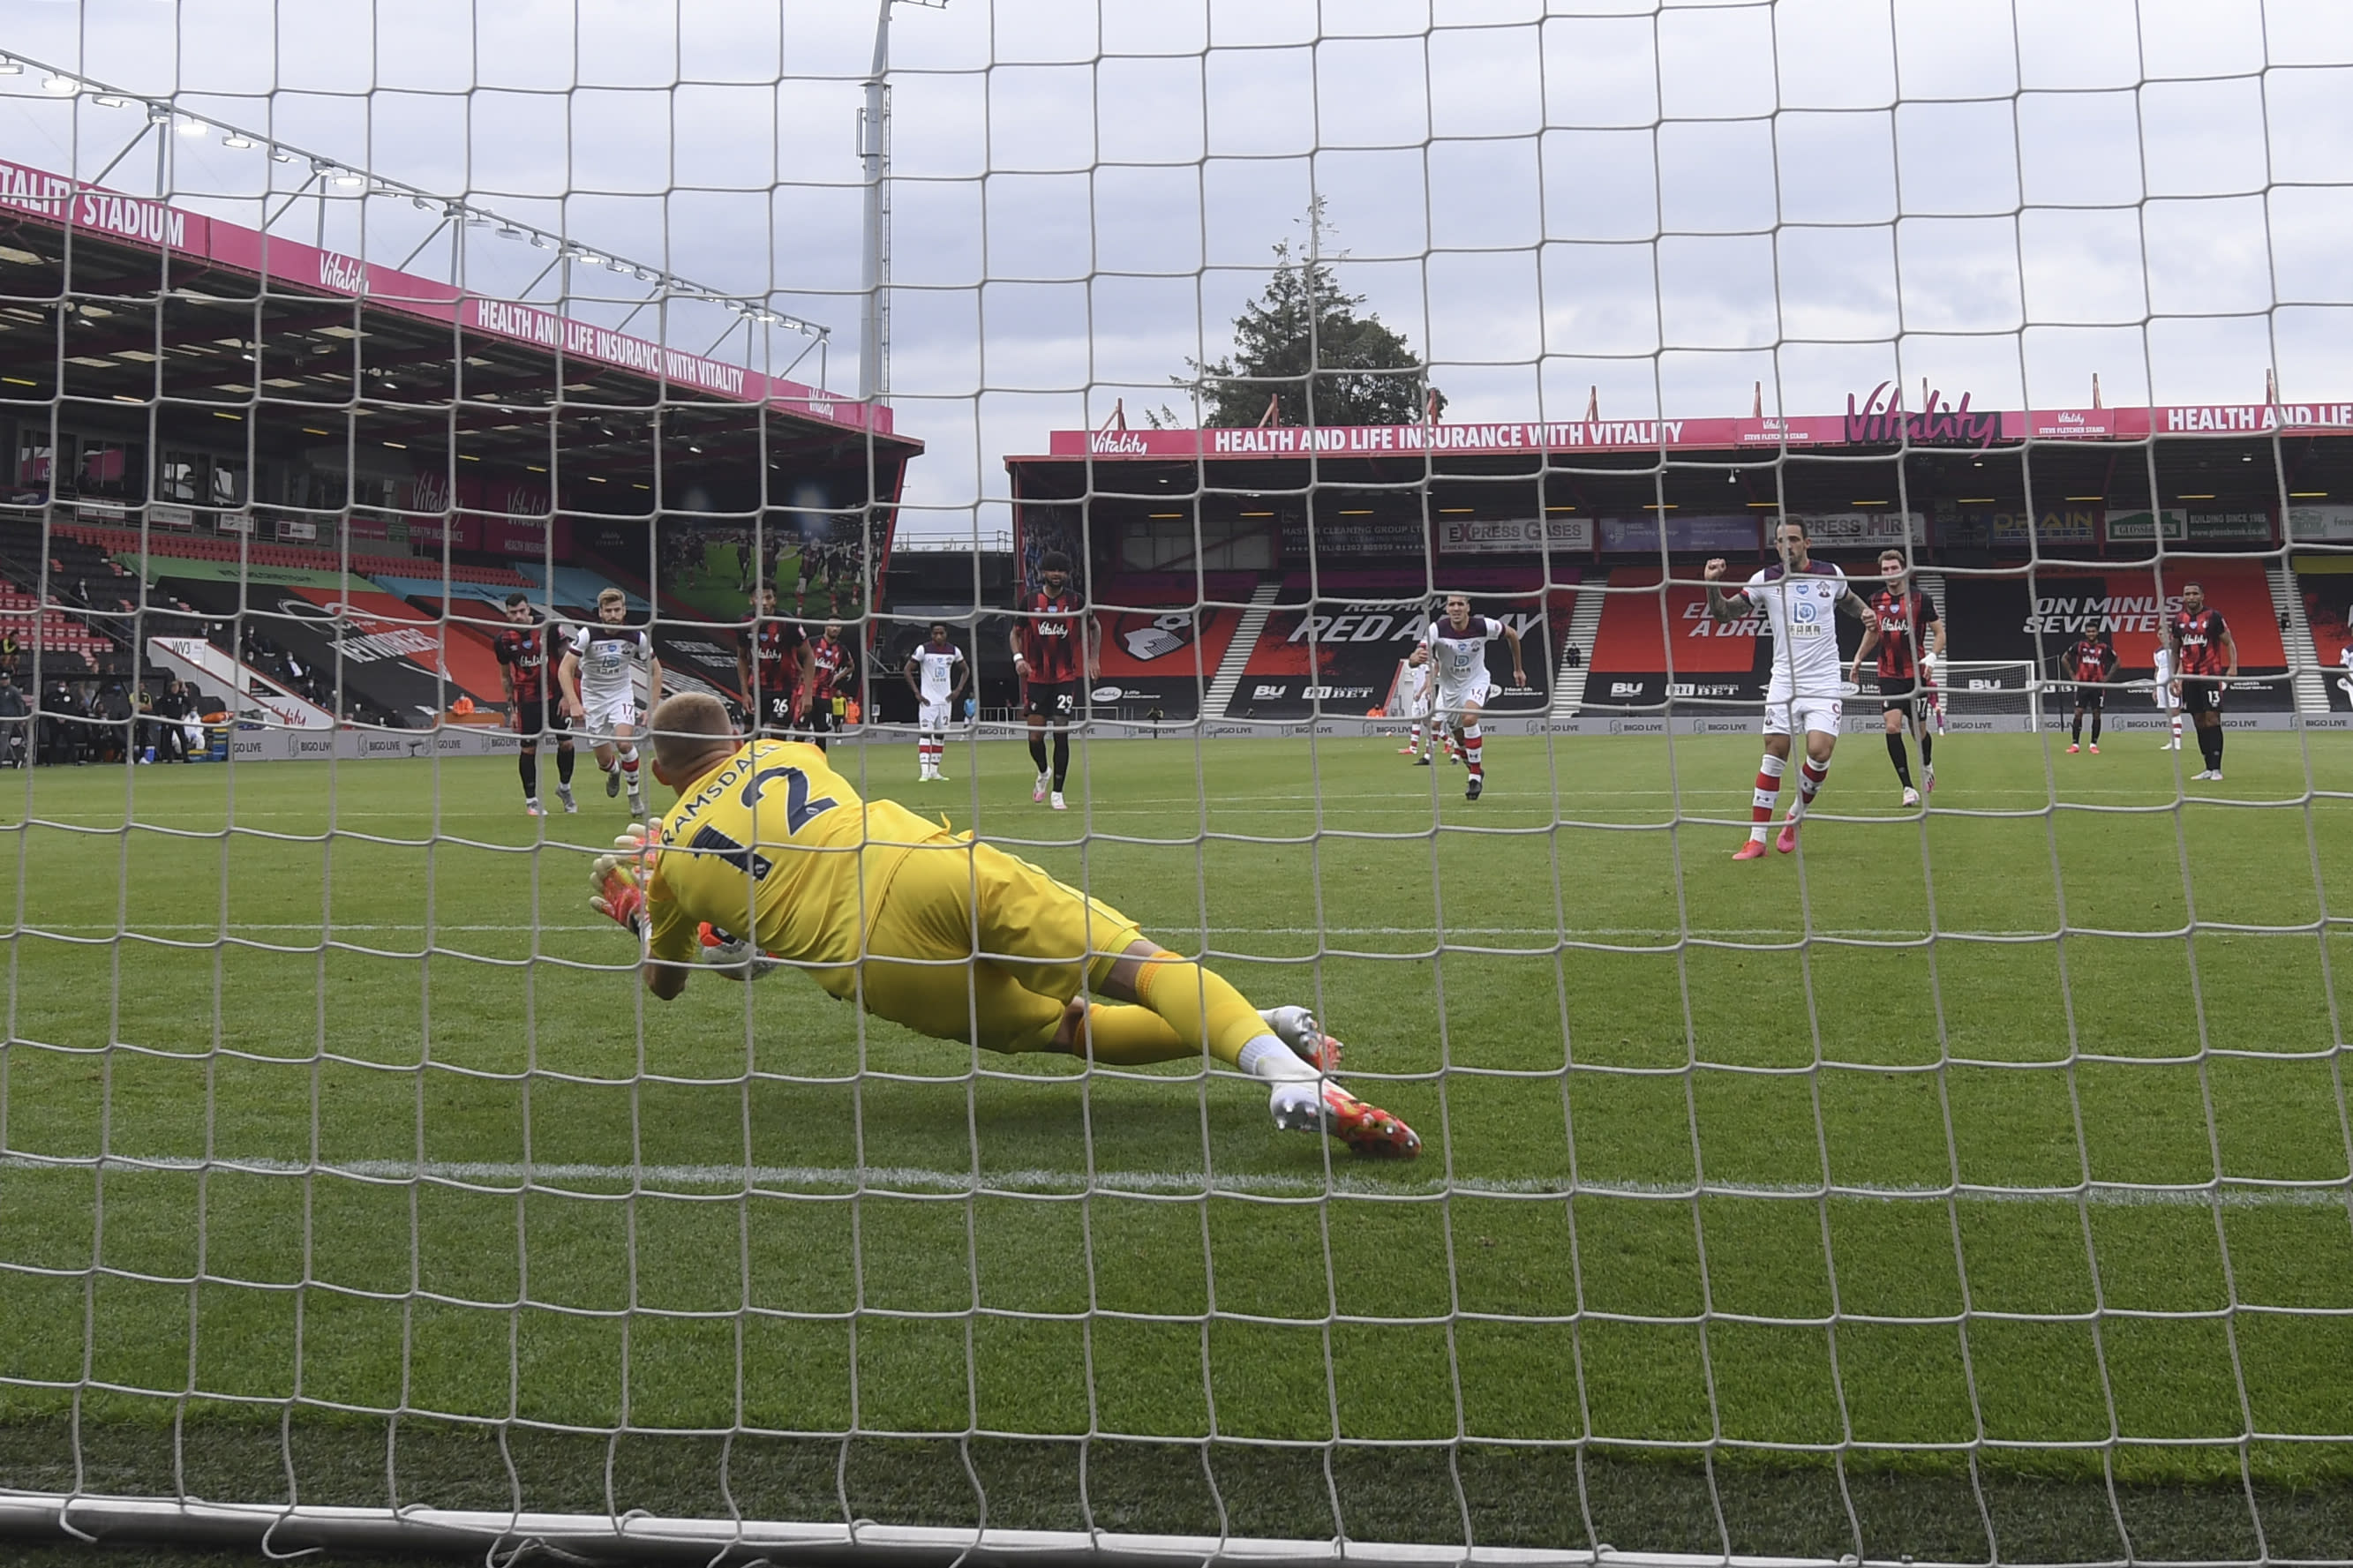 Bournemouth's goalkeeper Aaron Ramsdale saves a penalty during the English Premier League soccer match between Bournemouth and Southampton, at the Vitality Stadium in Bournemouth, England, Sunday, July 19, 2020. (Mike Hewitt/Pool Photo via AP)